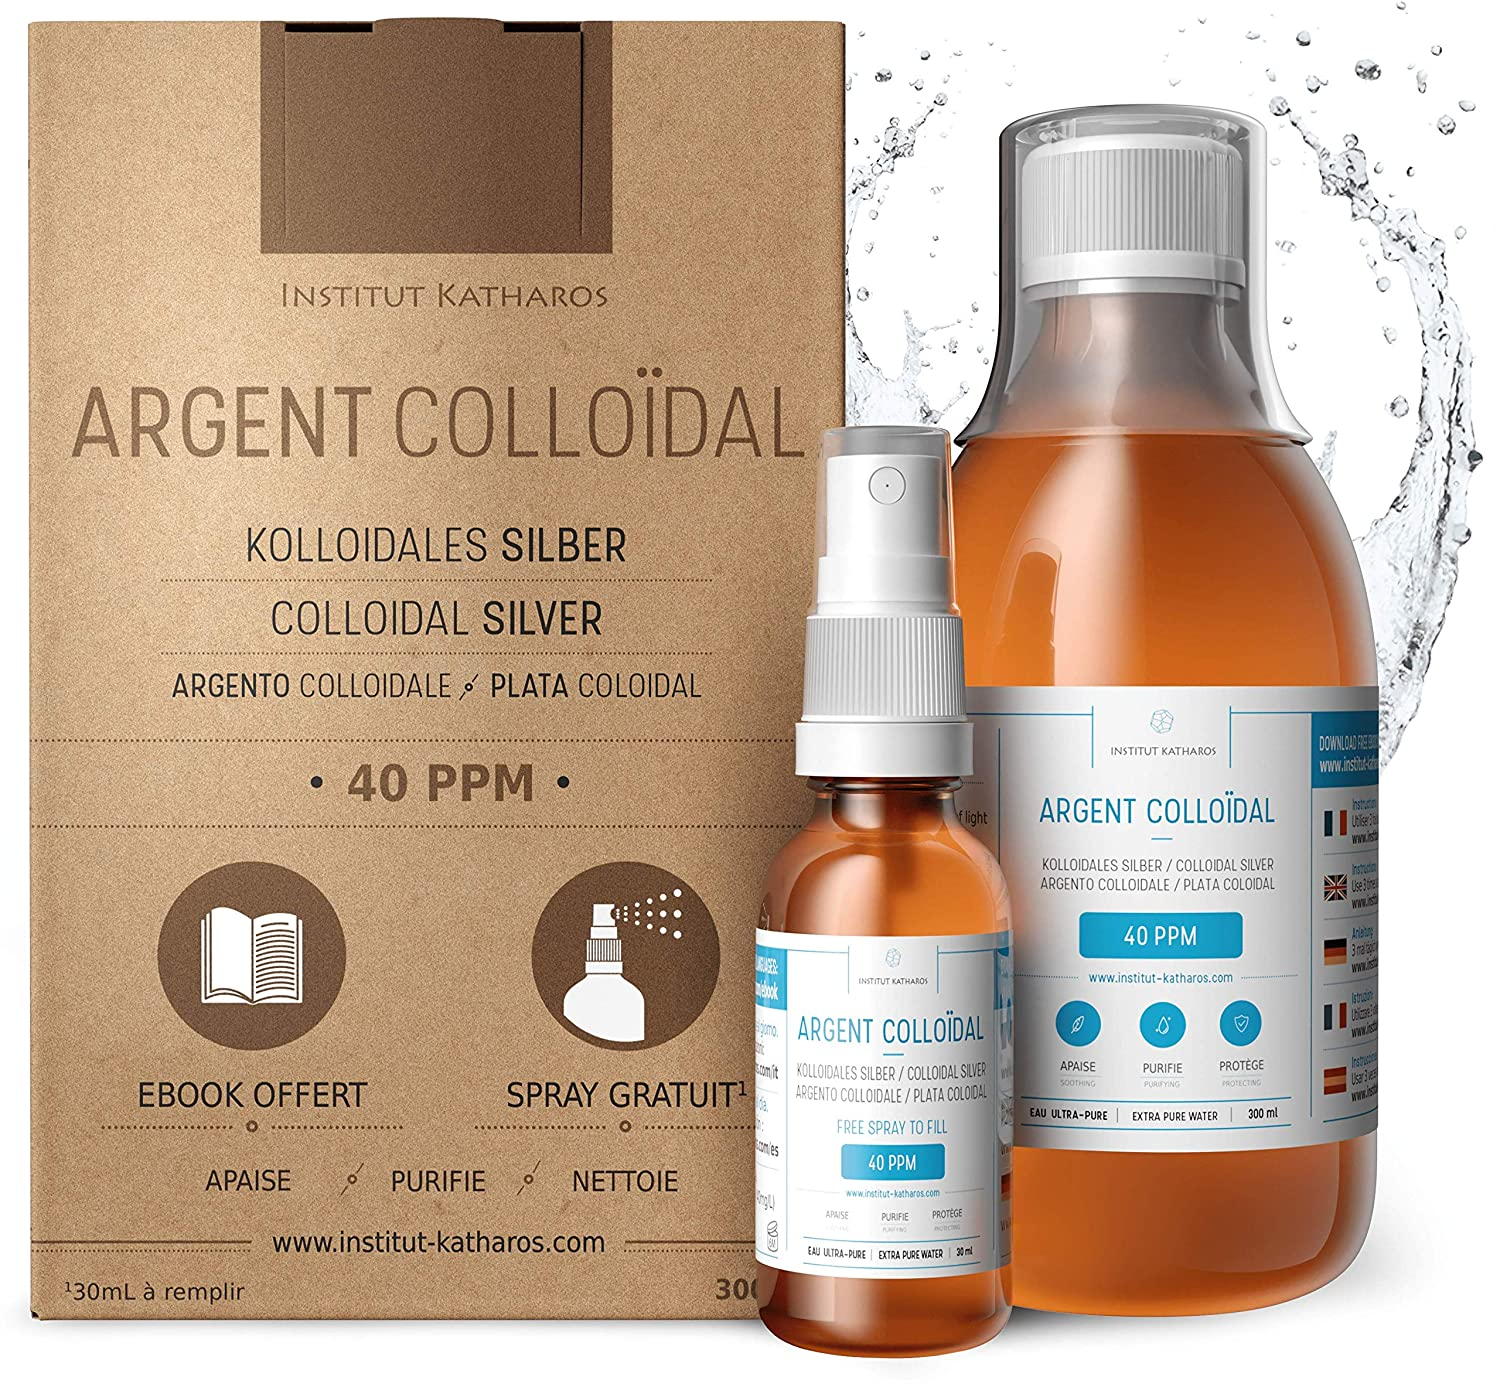 Argento Colloidale 100% Puro 40 PPM 300mL